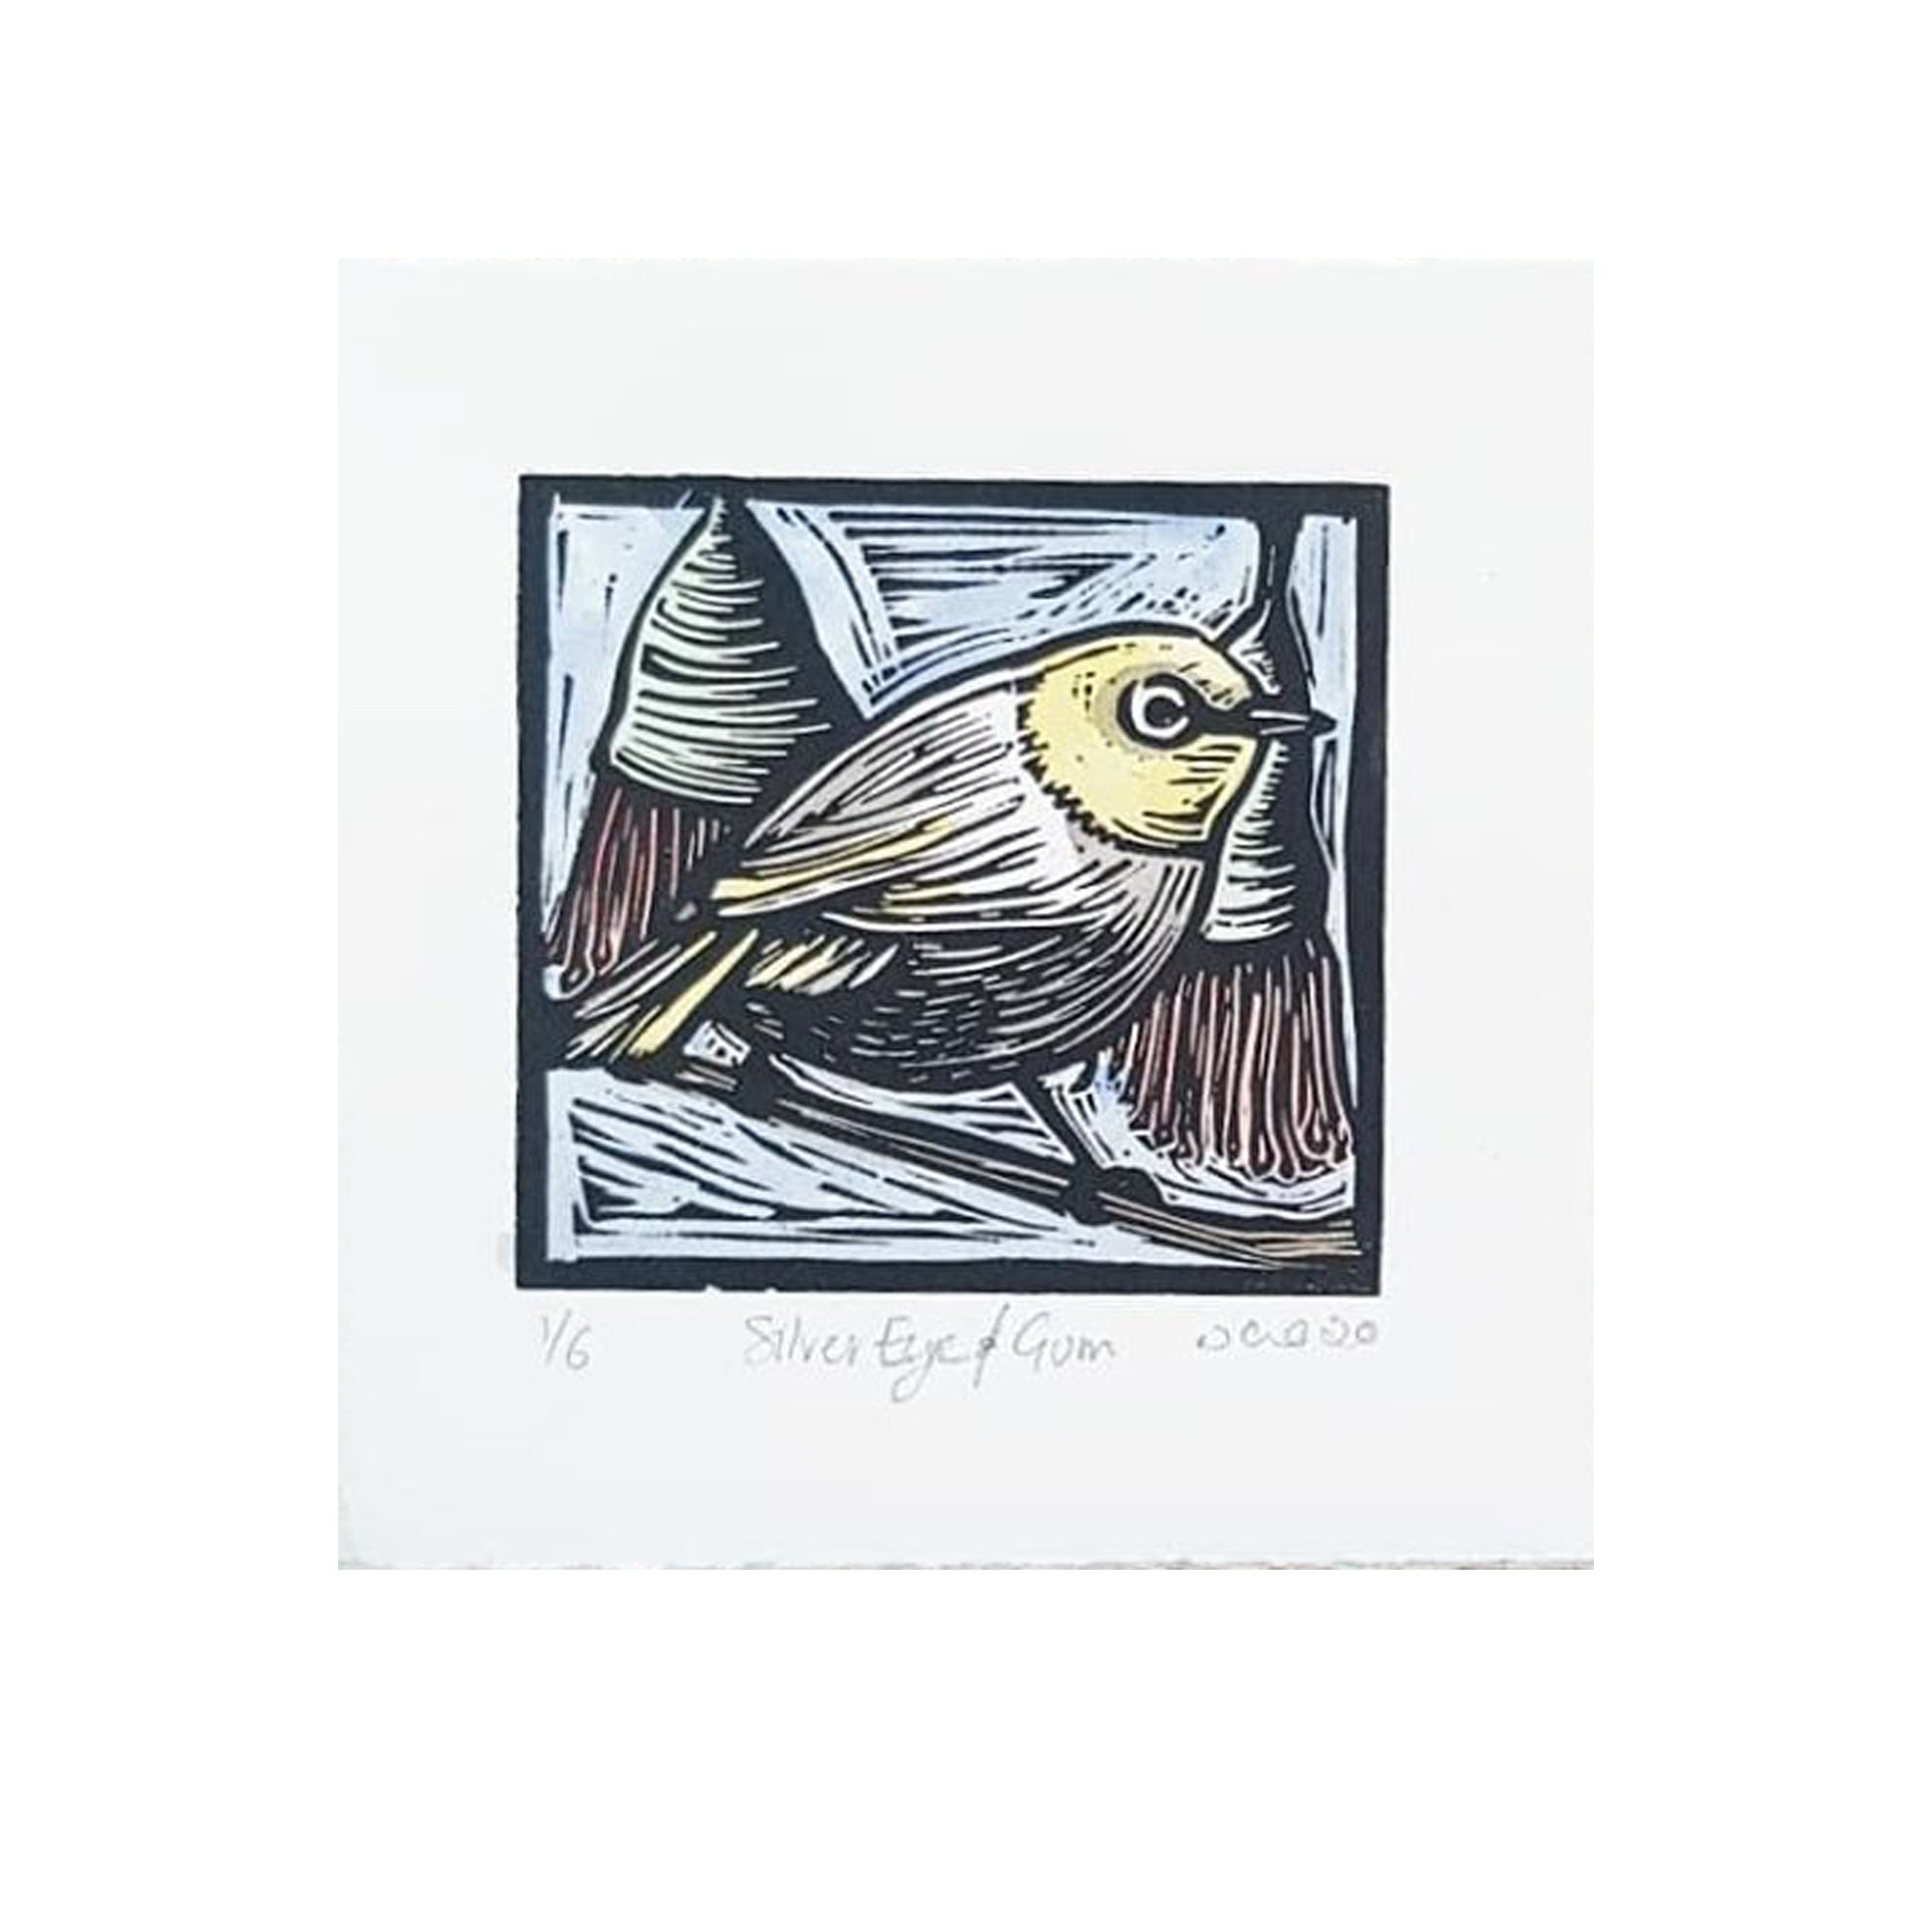 Nicola Cowie -  'Silver Eye and Gum' Framed Linocut (nco6)